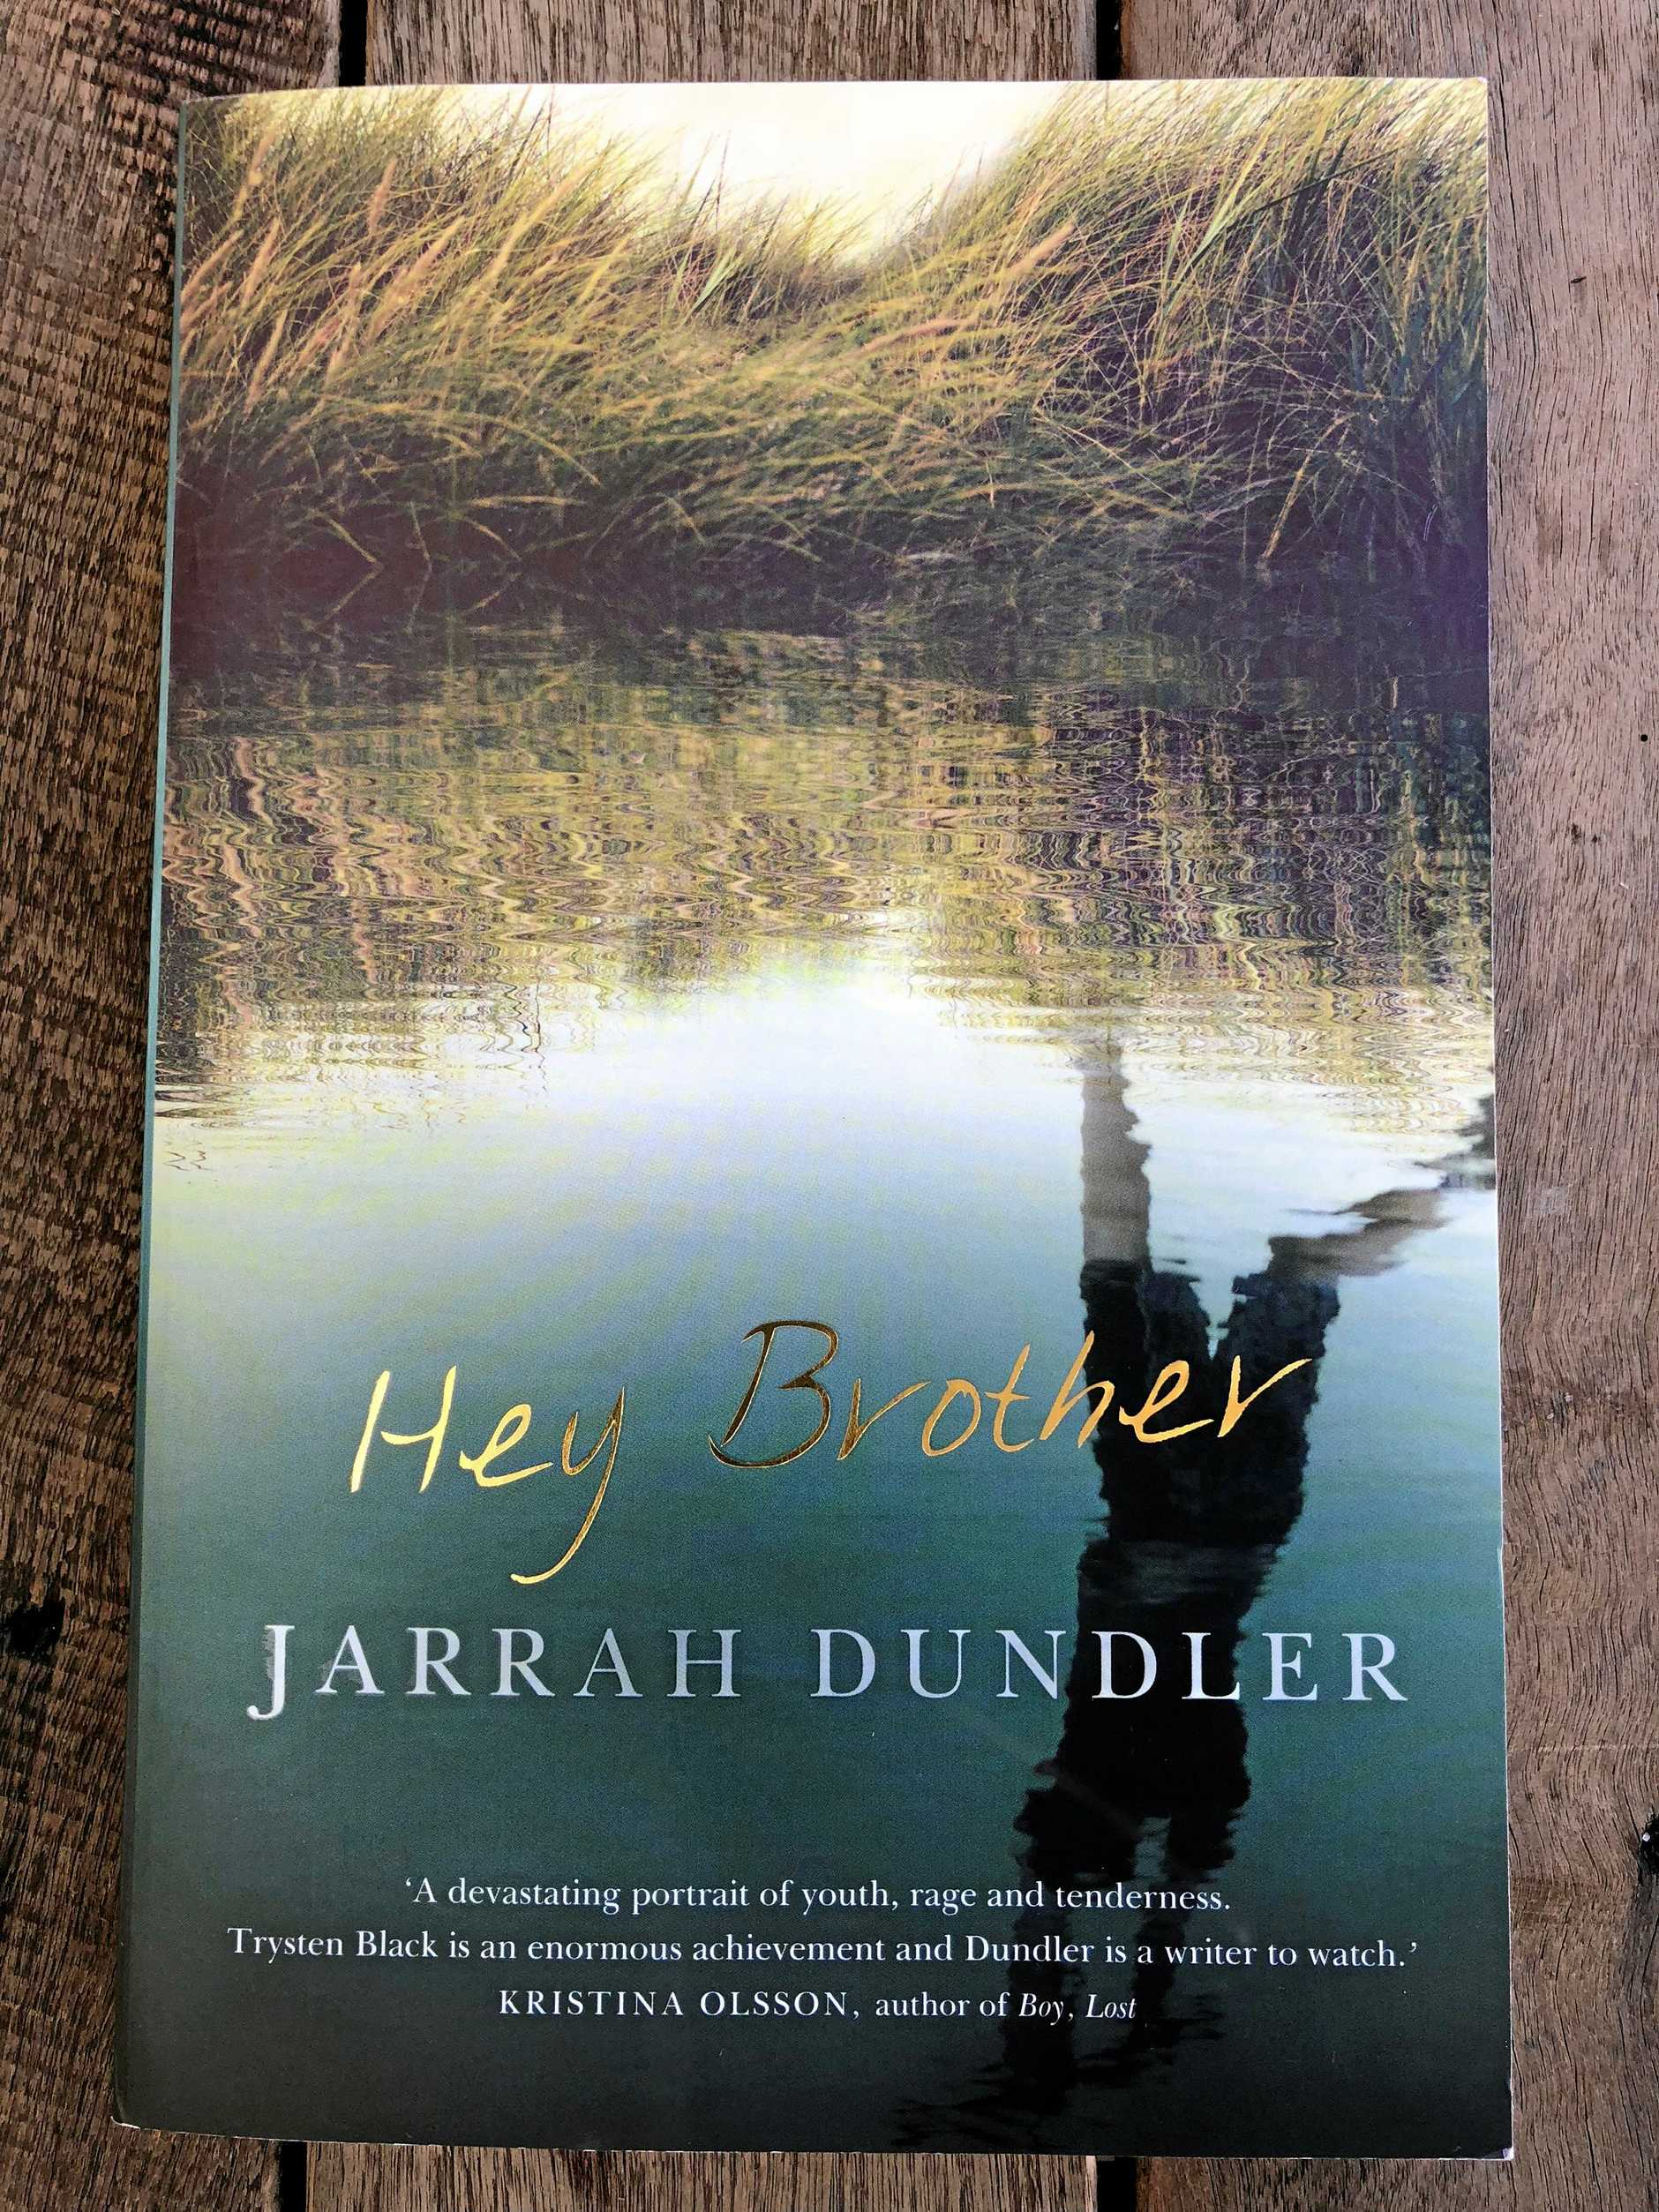 Hey Brother, published by Allen & Unwin is a new novel by Northern Rivers author Jarrah, Dundler.